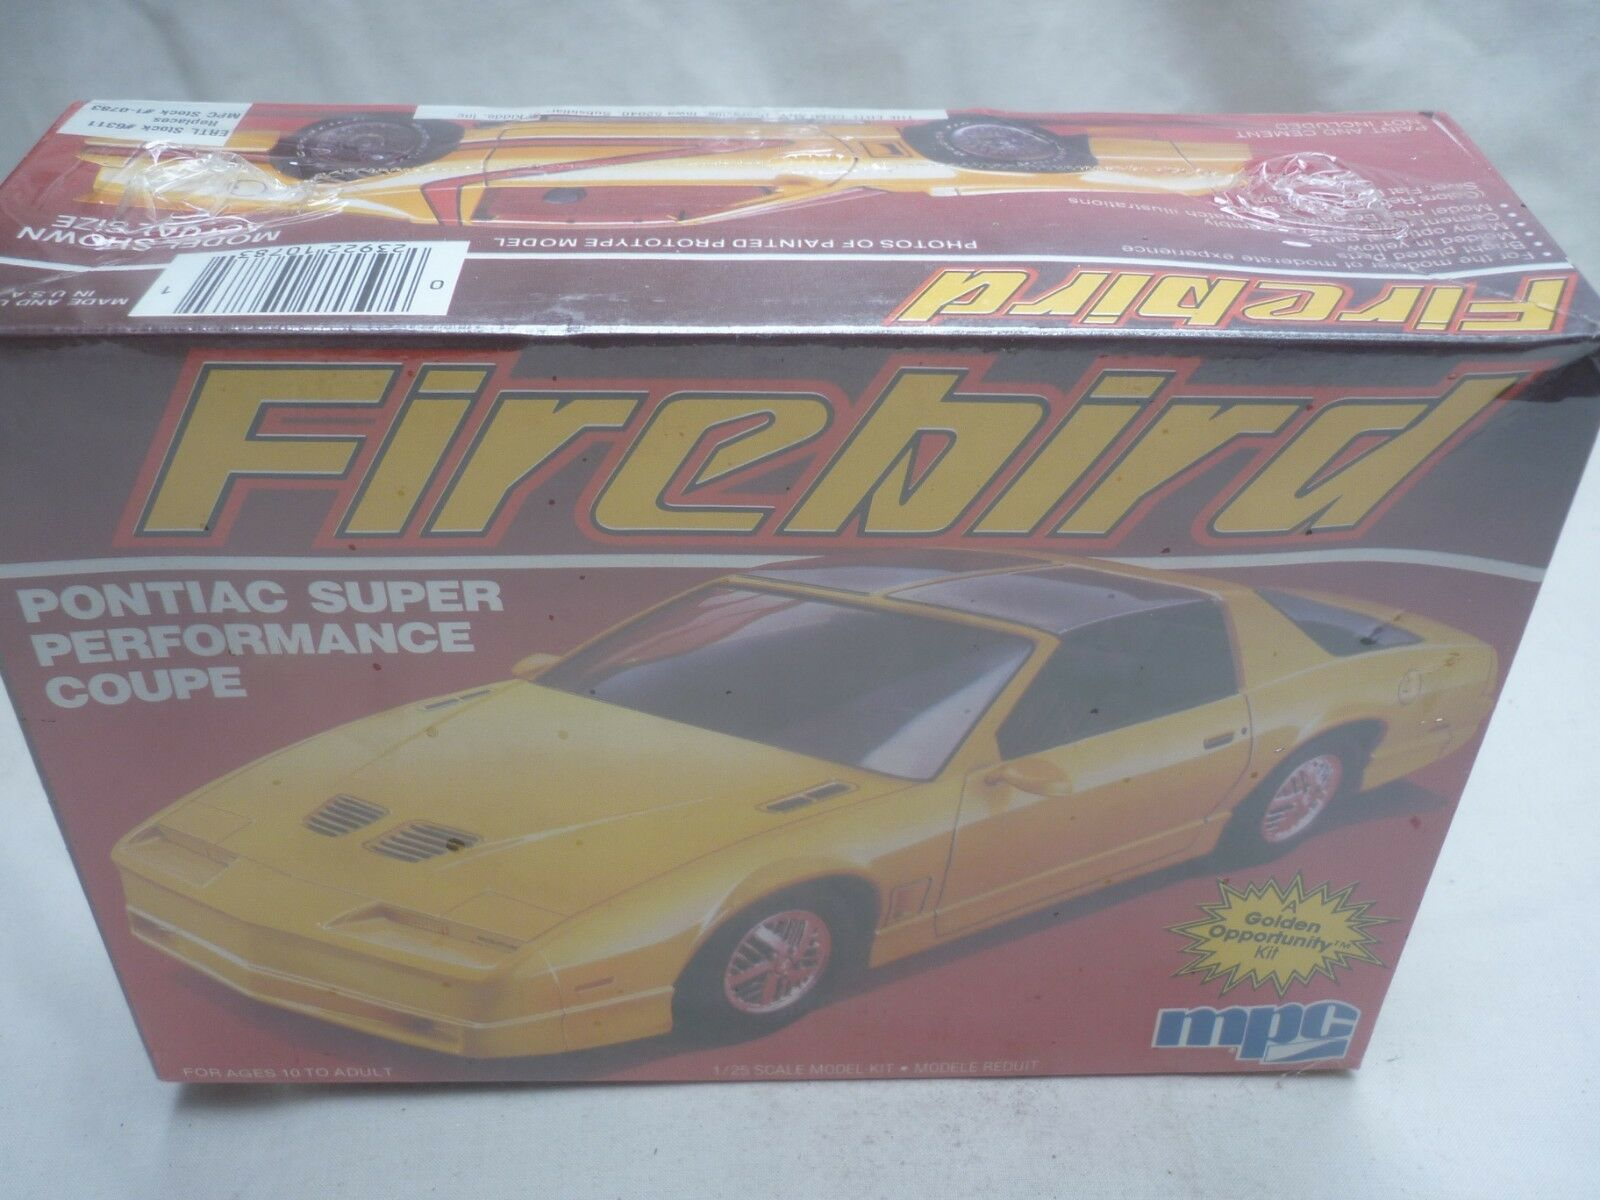 MPC un-opened plastic kit of a Pontiac Firebird, Factory sealed